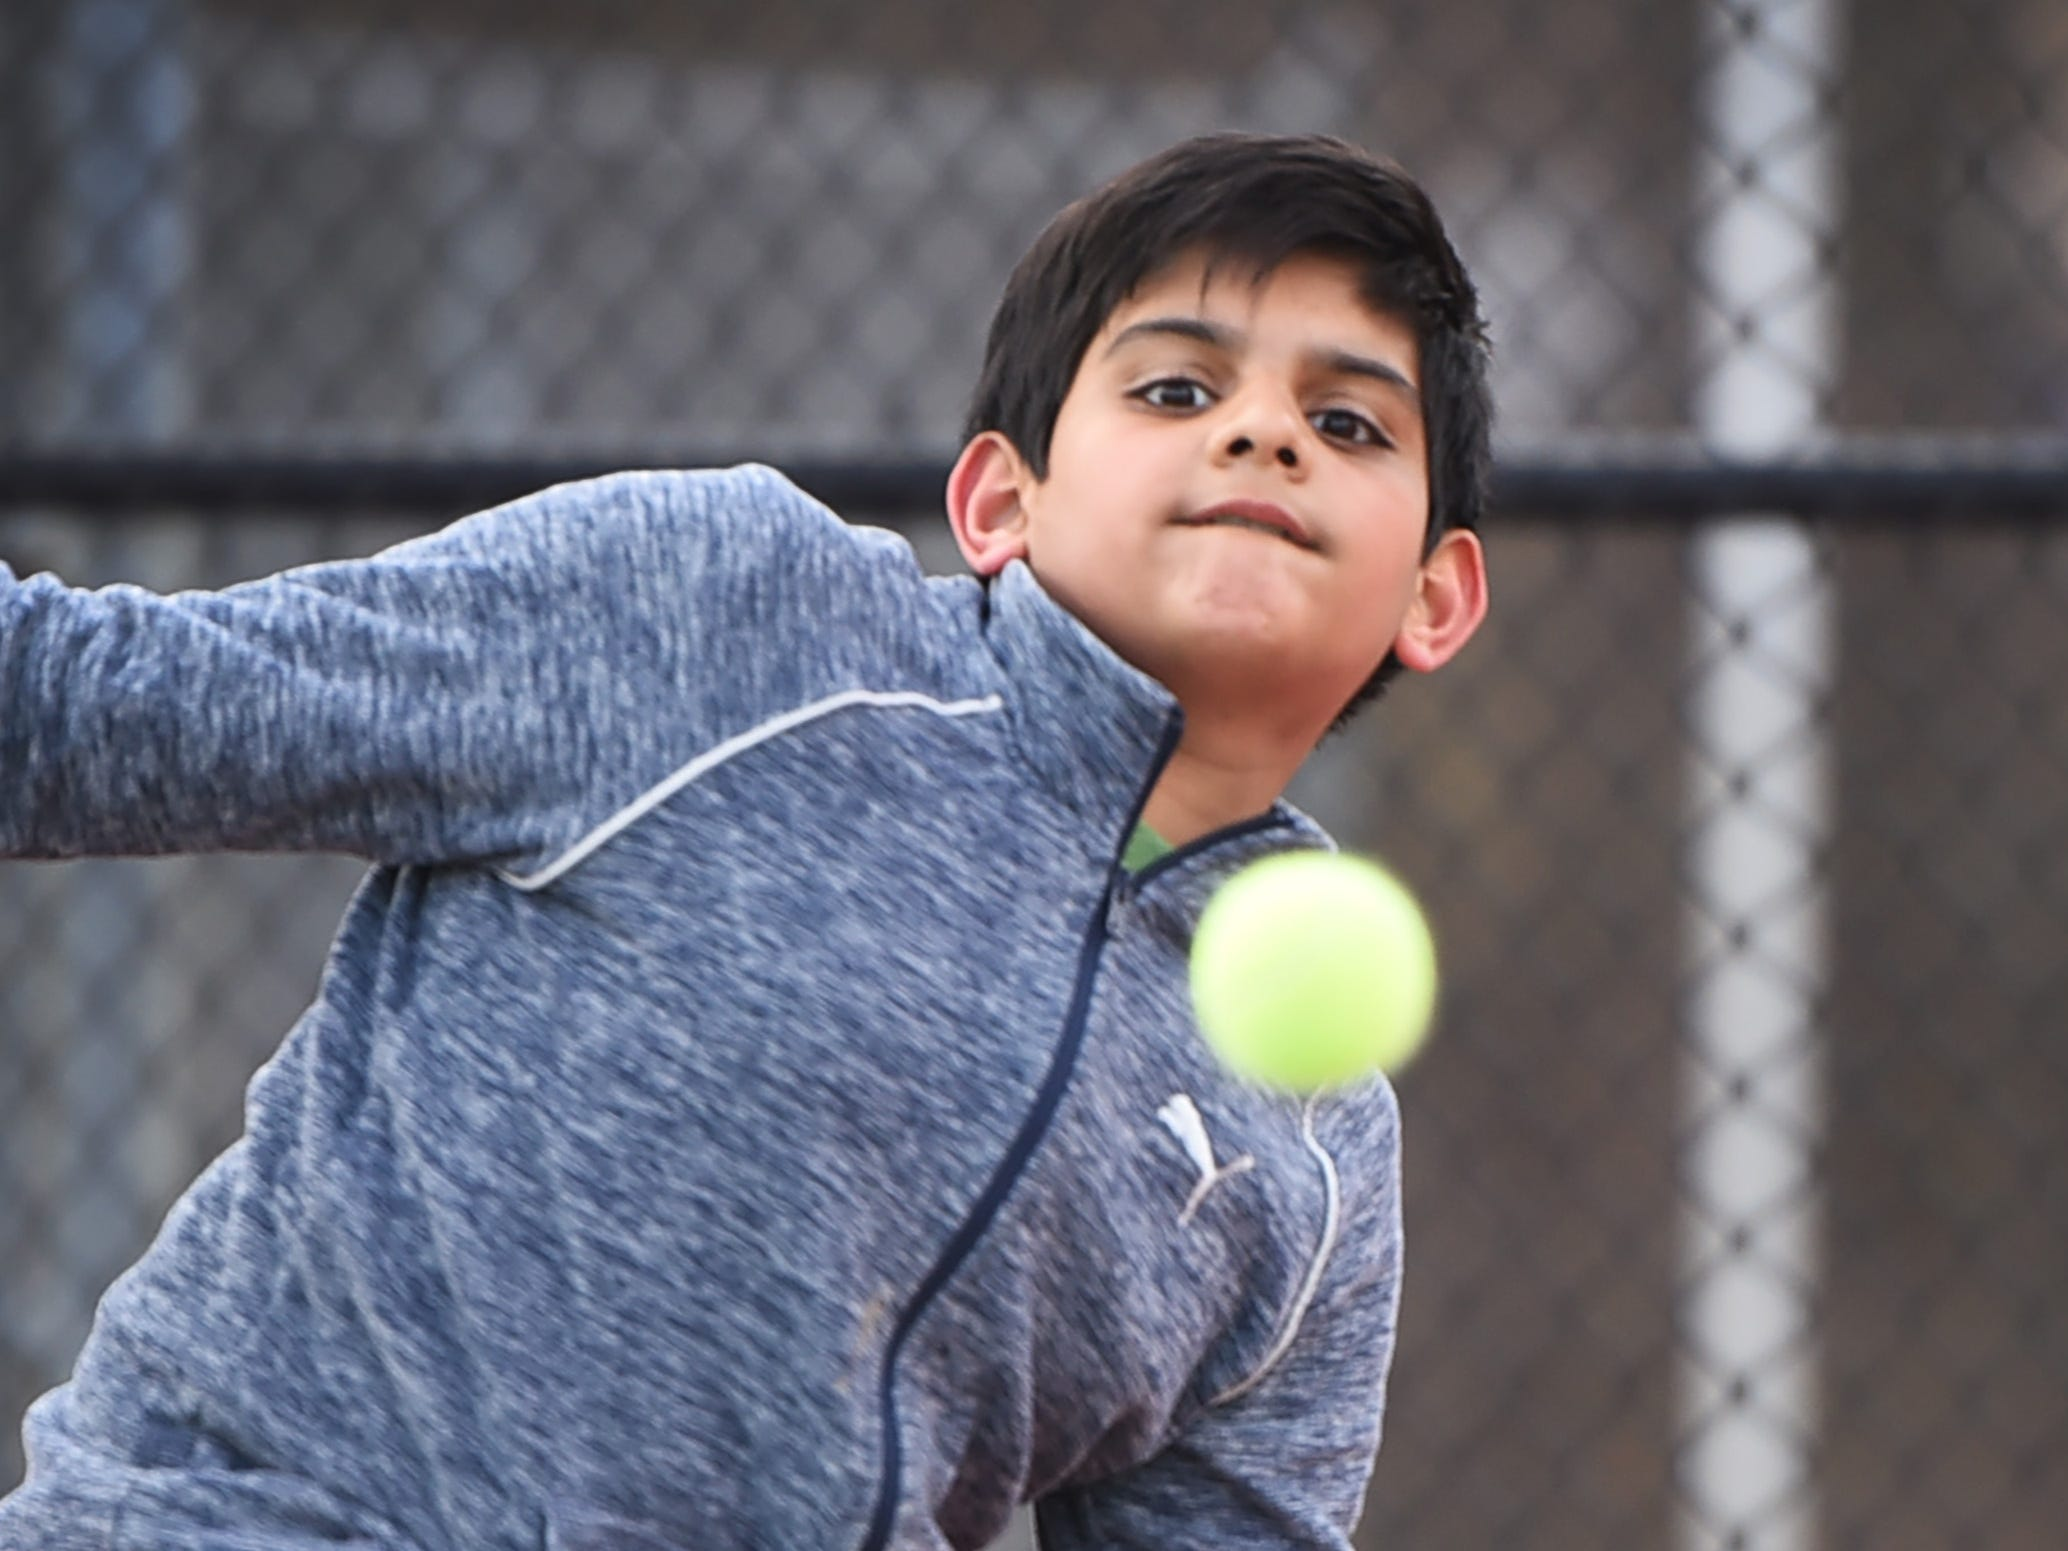 Morris Hills freshman Siddhant Desai of Morris Plains plays during a practice, photographed at Morris Hills High School in Rockaway on 03/19/19. This is for the season preview on team diversity.